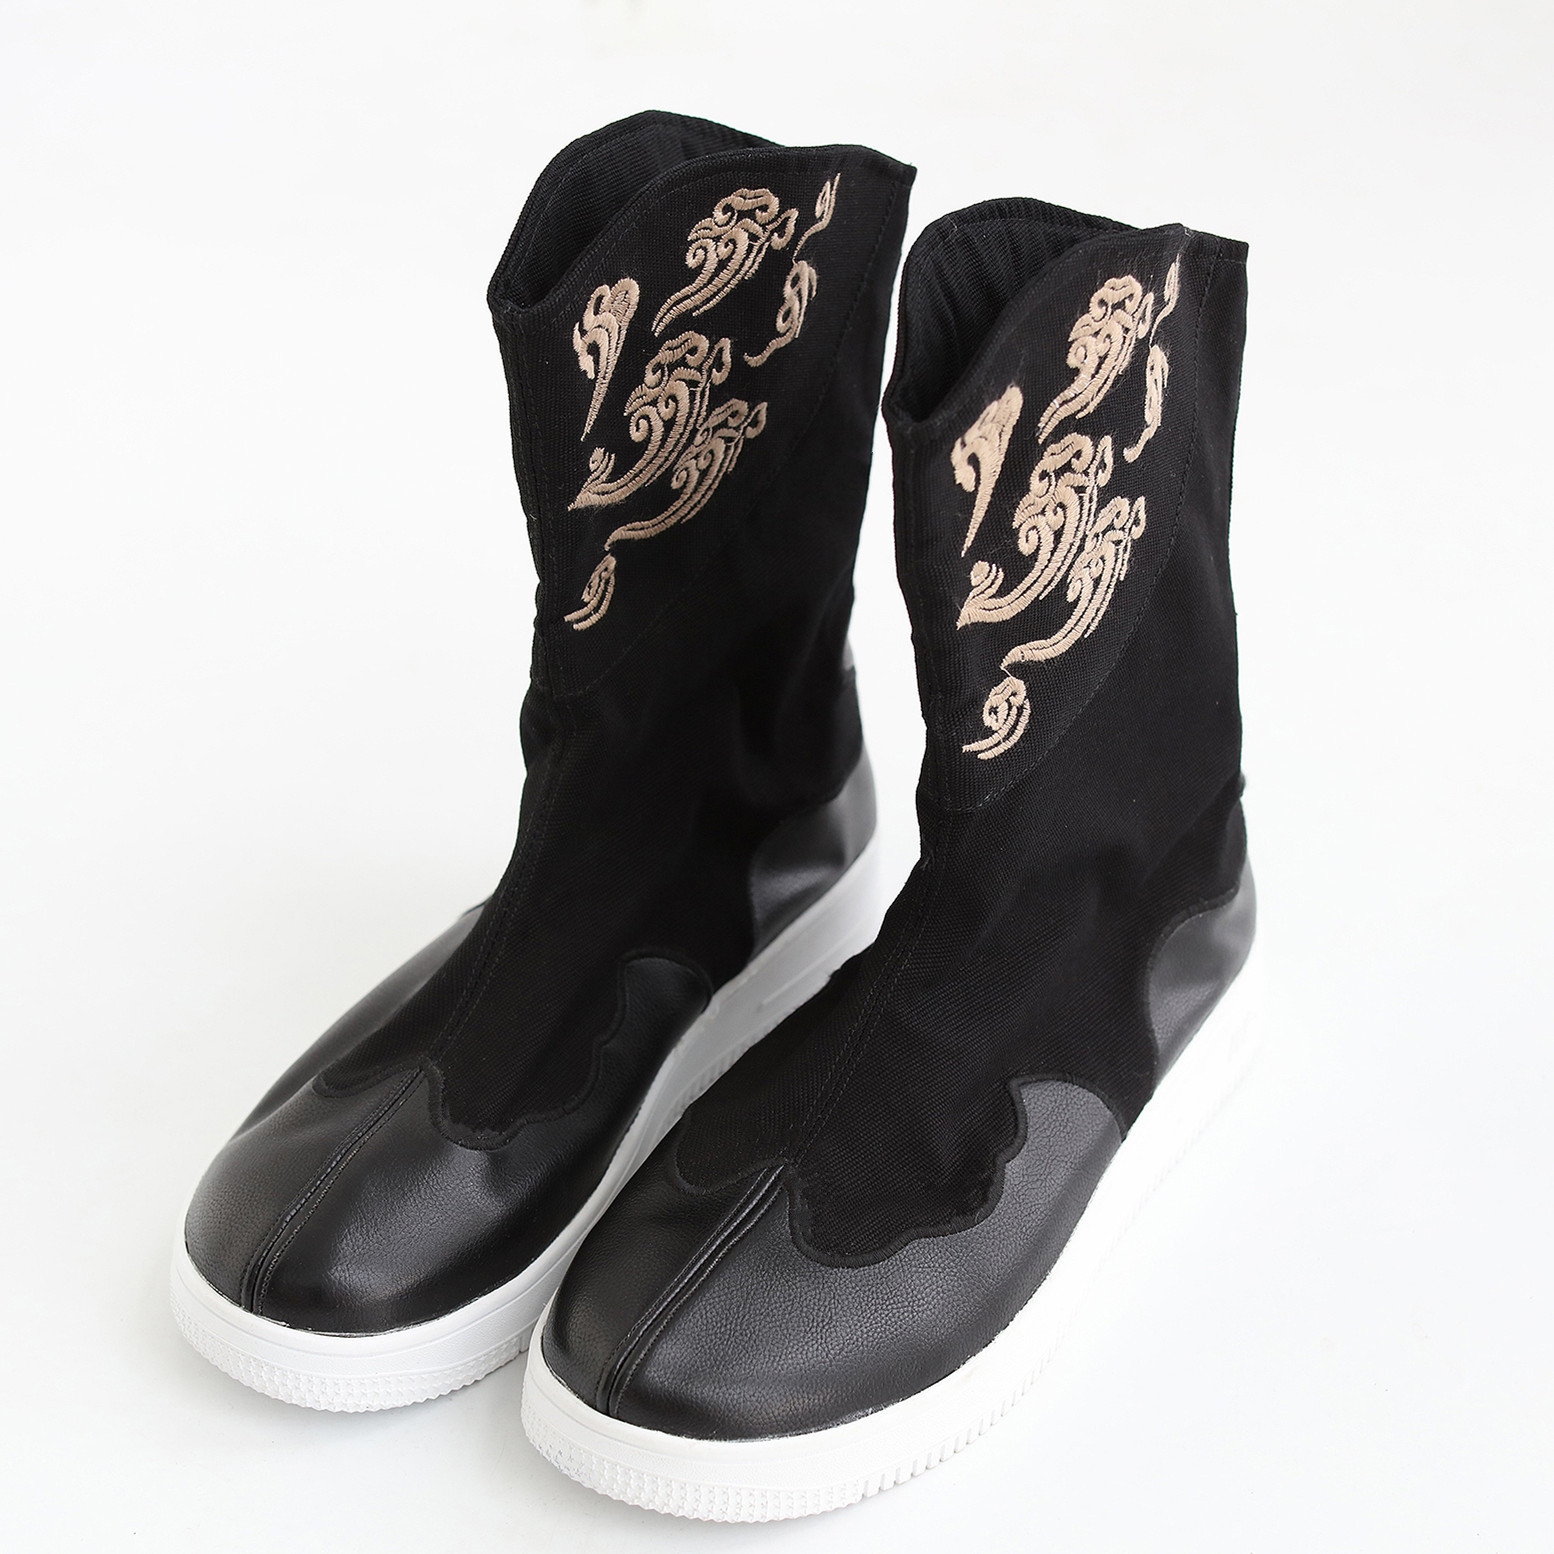 Nuages bottes costumes traditionnels chinois toile broderie hommes bottes creative garder au chaud mâle confortable chaussure bottine